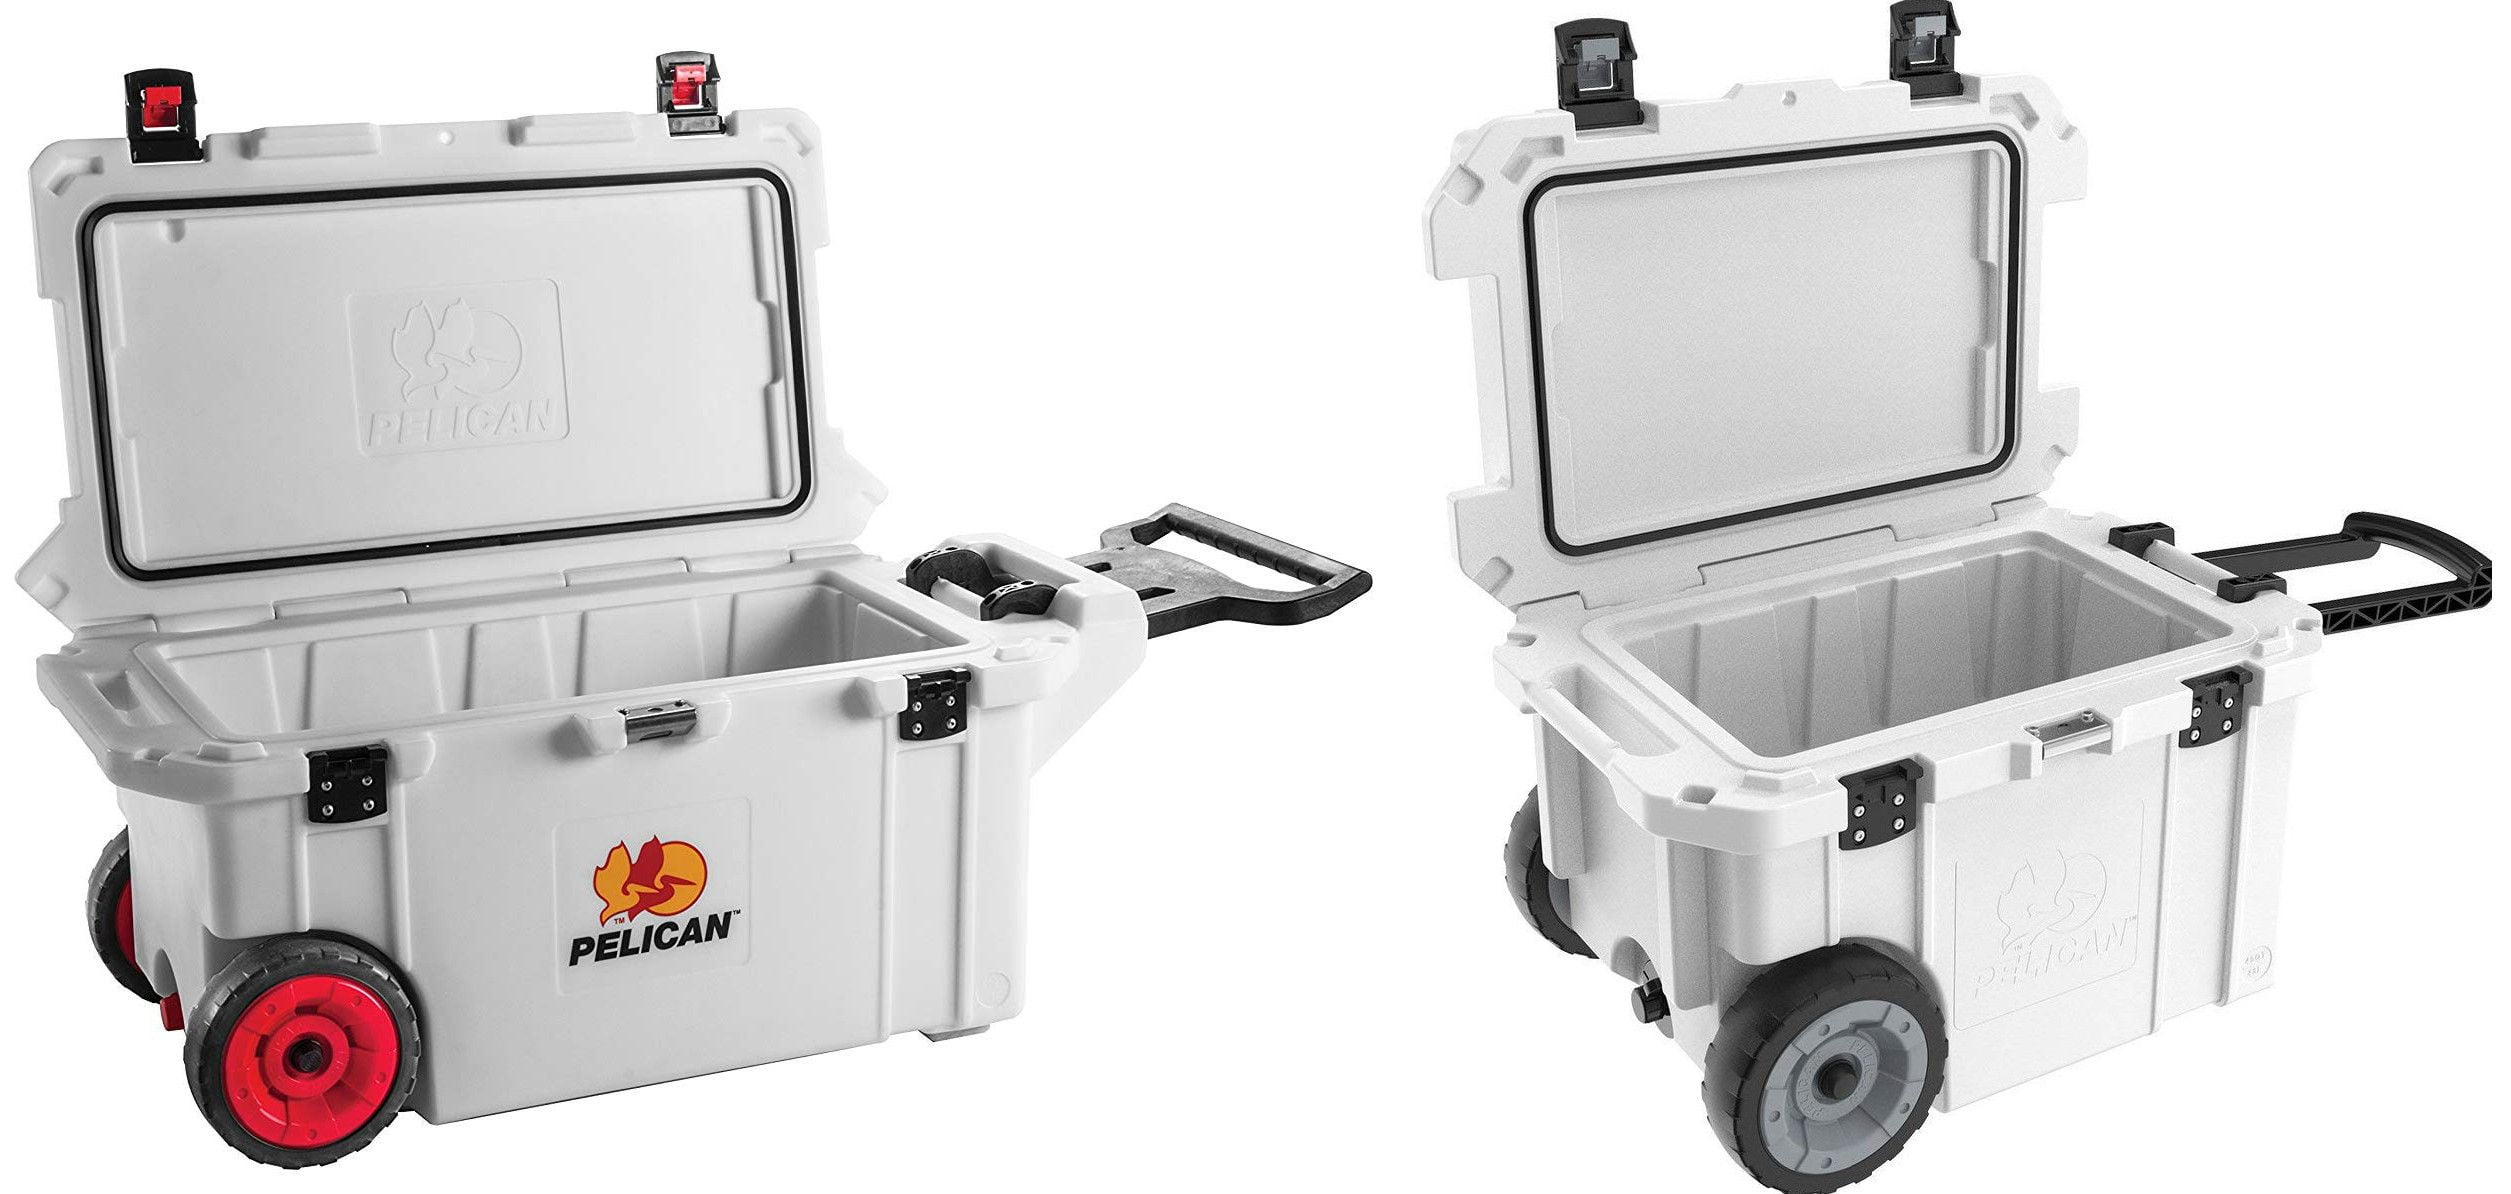 Pelican ProGear Elite Wheeled Coolers review